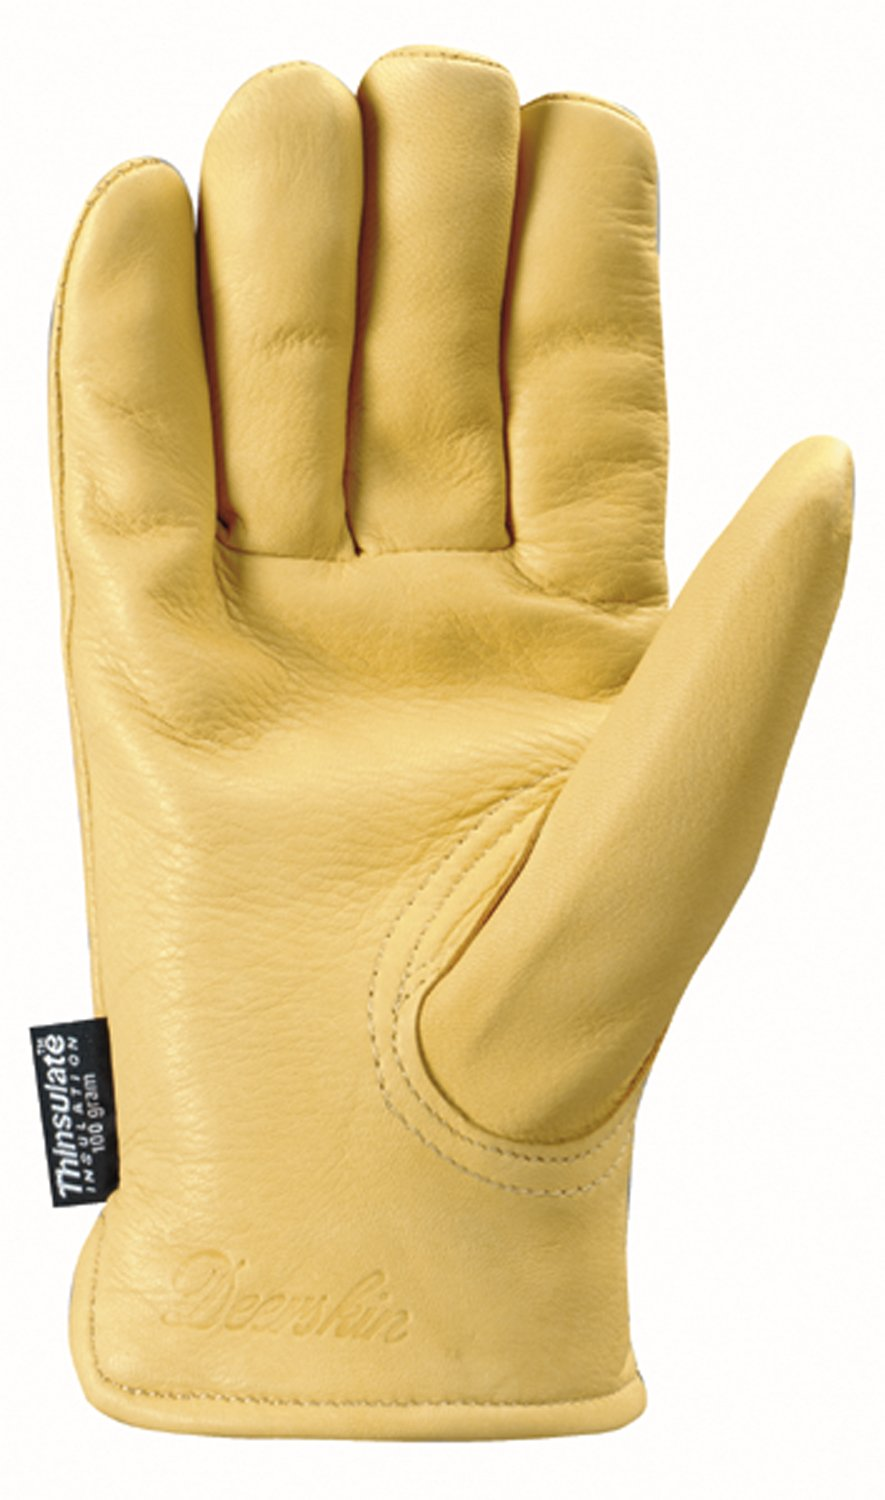 Insulated leather work gloves amazon - Wells Lamont Leather Work Gloves Insulated Grain Deerskin Medium 963m Insulated Work Gloves Amazon Com